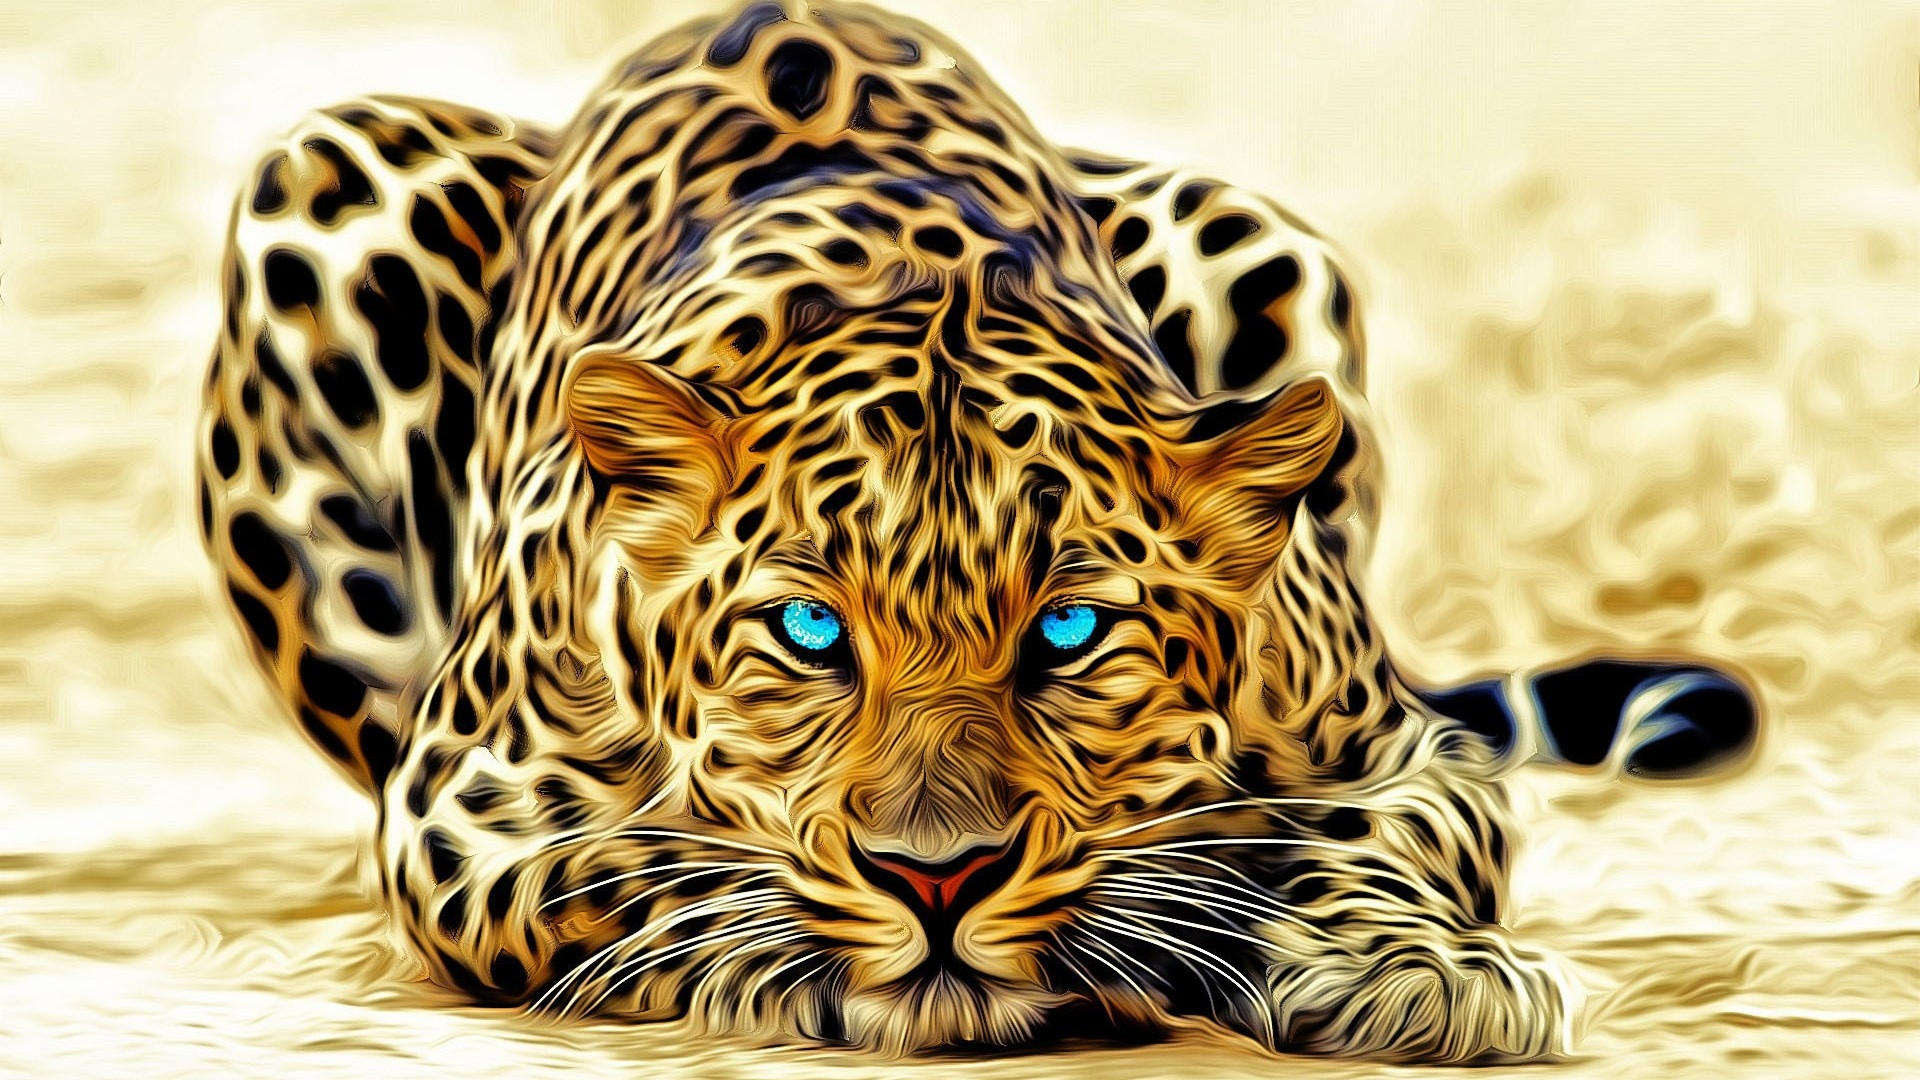 FBxfvKghTWn_Leopard-3D-Wallpaper-Screensaver.jpg